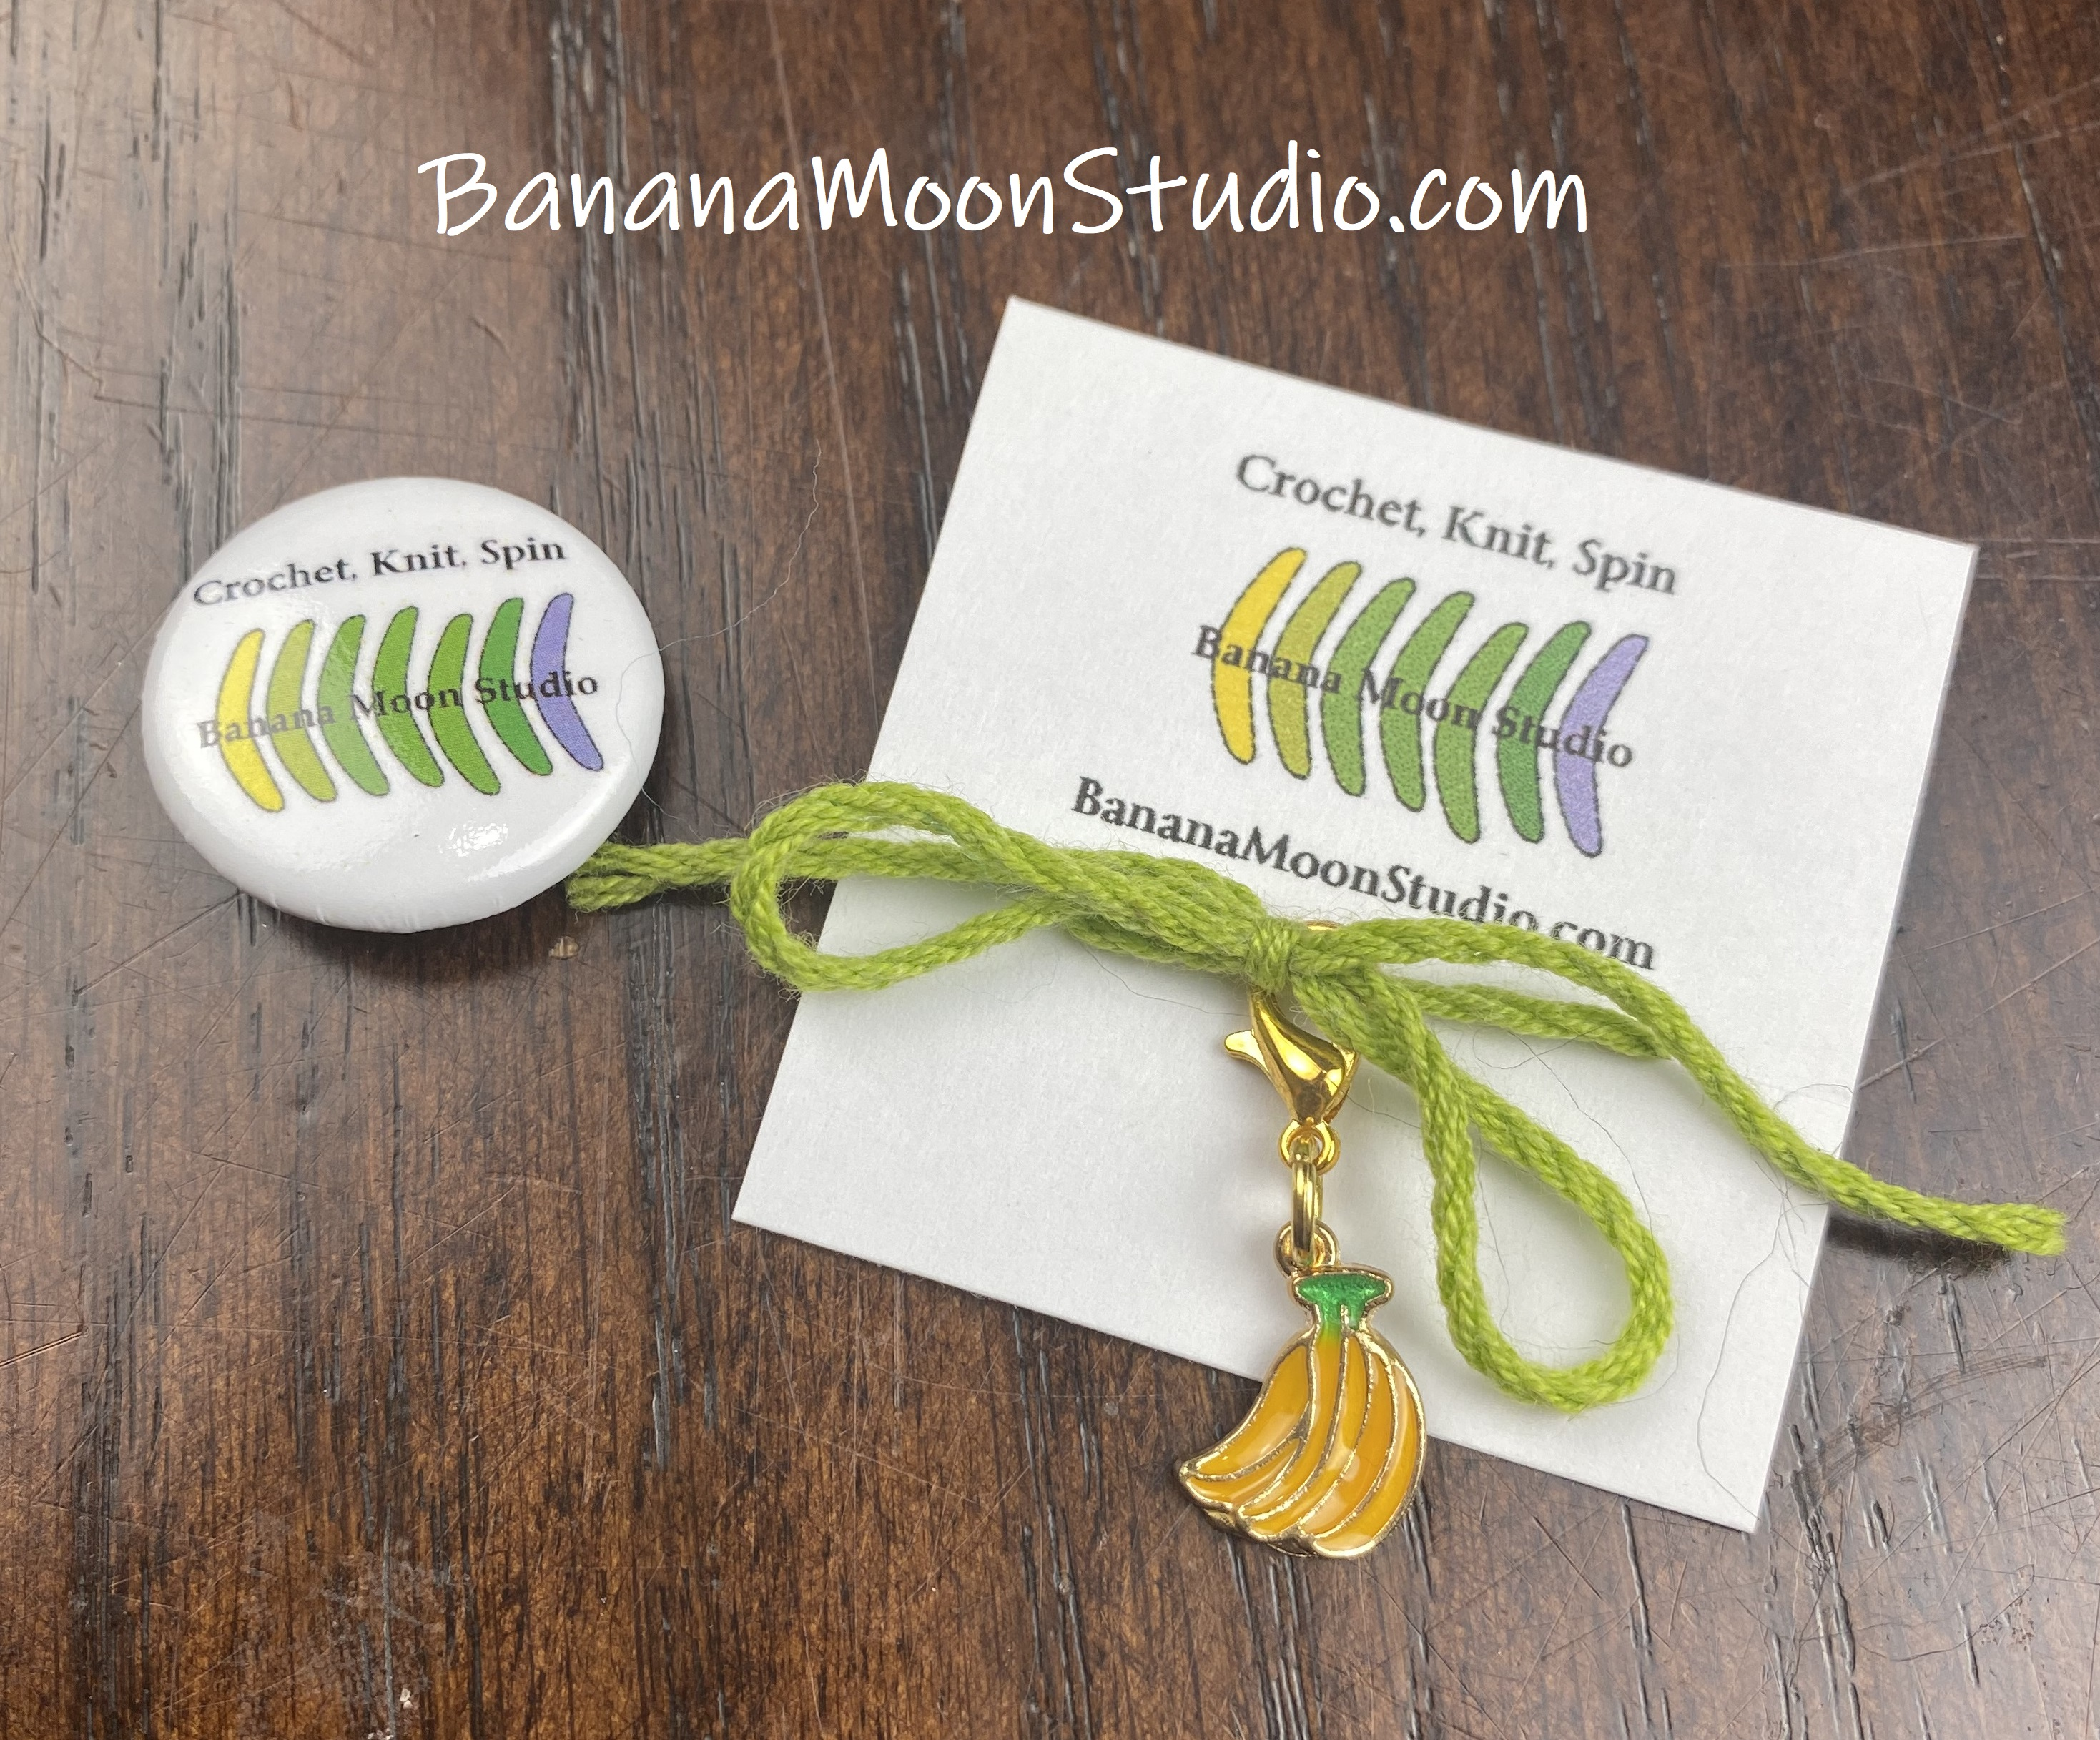 Button and stitch marker from Banana Moon Studio on a wooden surface.